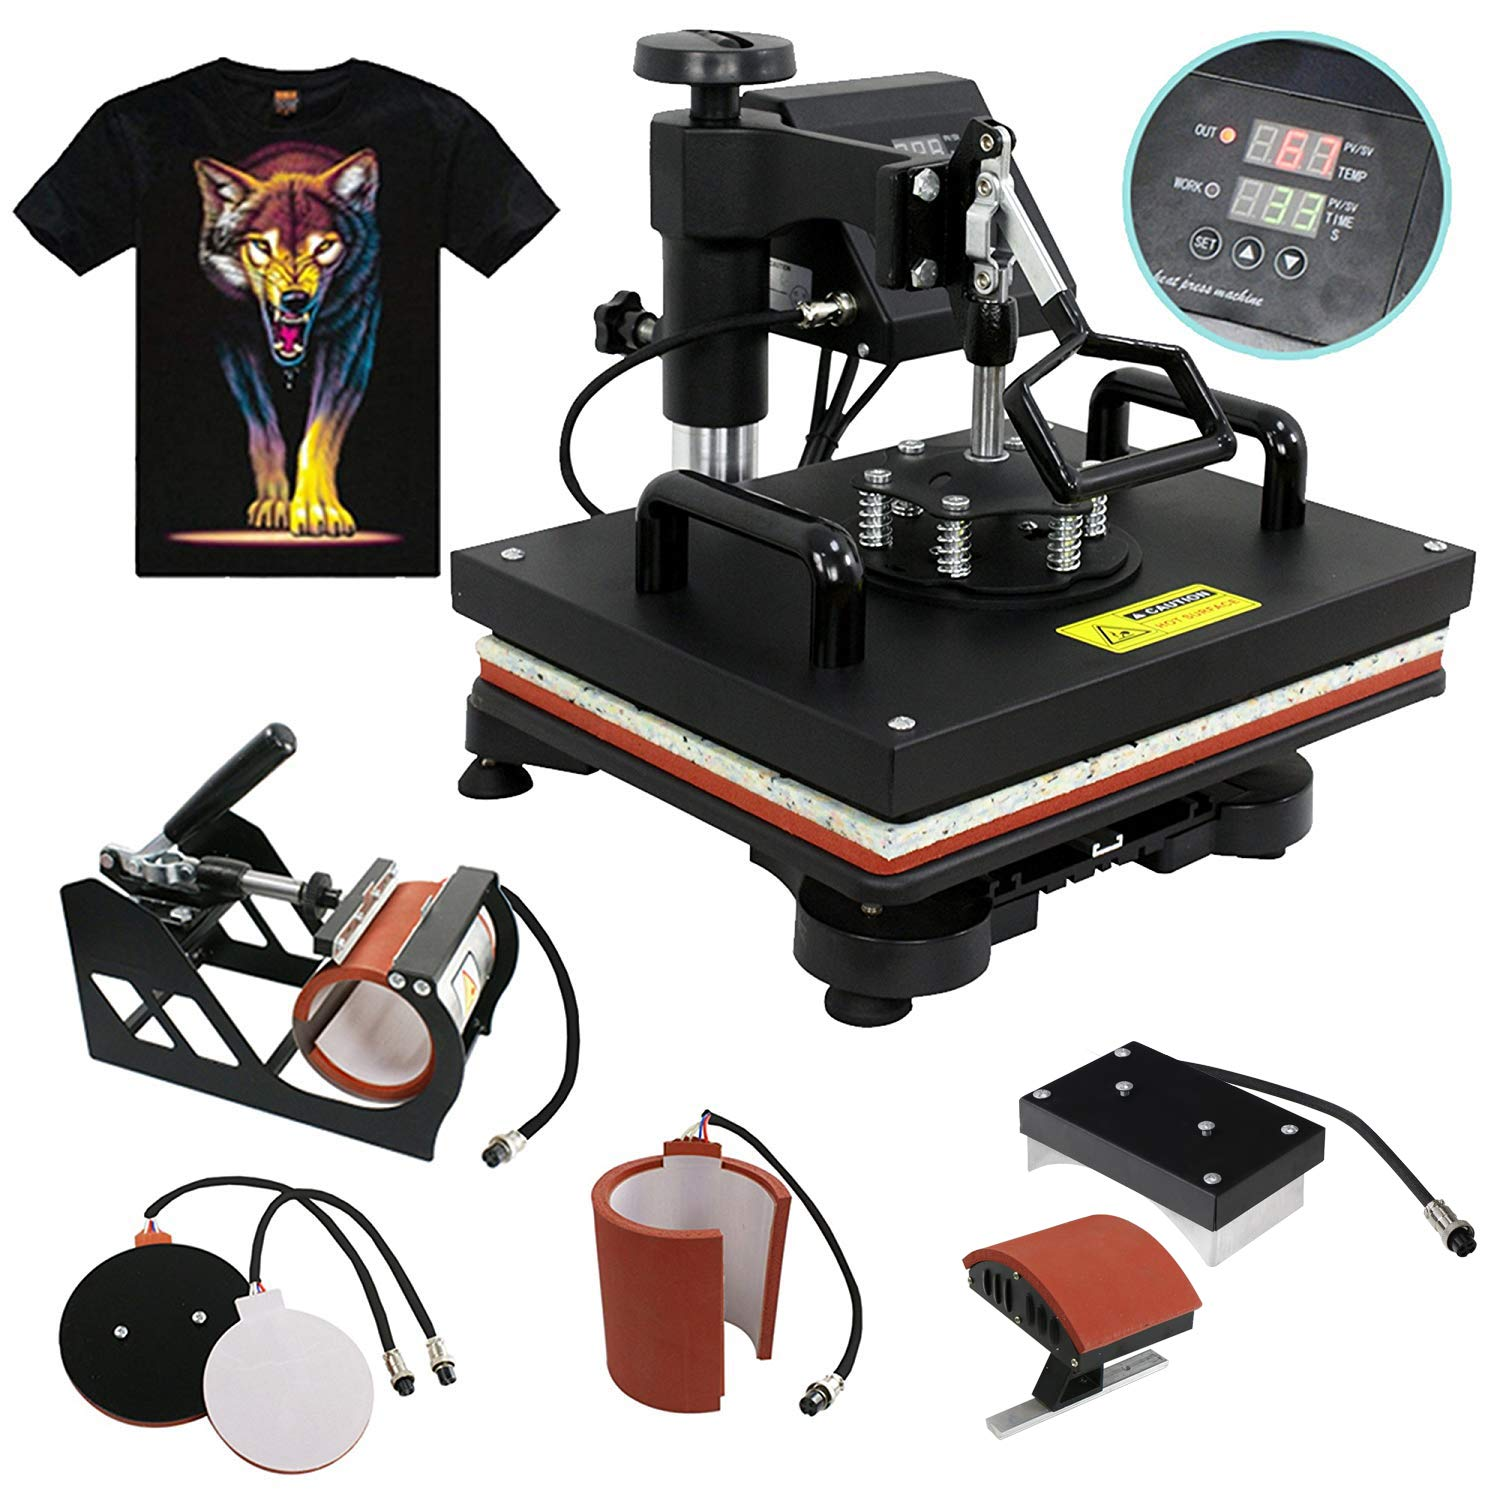 F2C 5 in 1 Professional Digital Transfer Sublimation Swing-Away 360-degree Rotation Heat Press Machine Hat//Mug//Plate//Cap//T-Shirt Multifunction Black